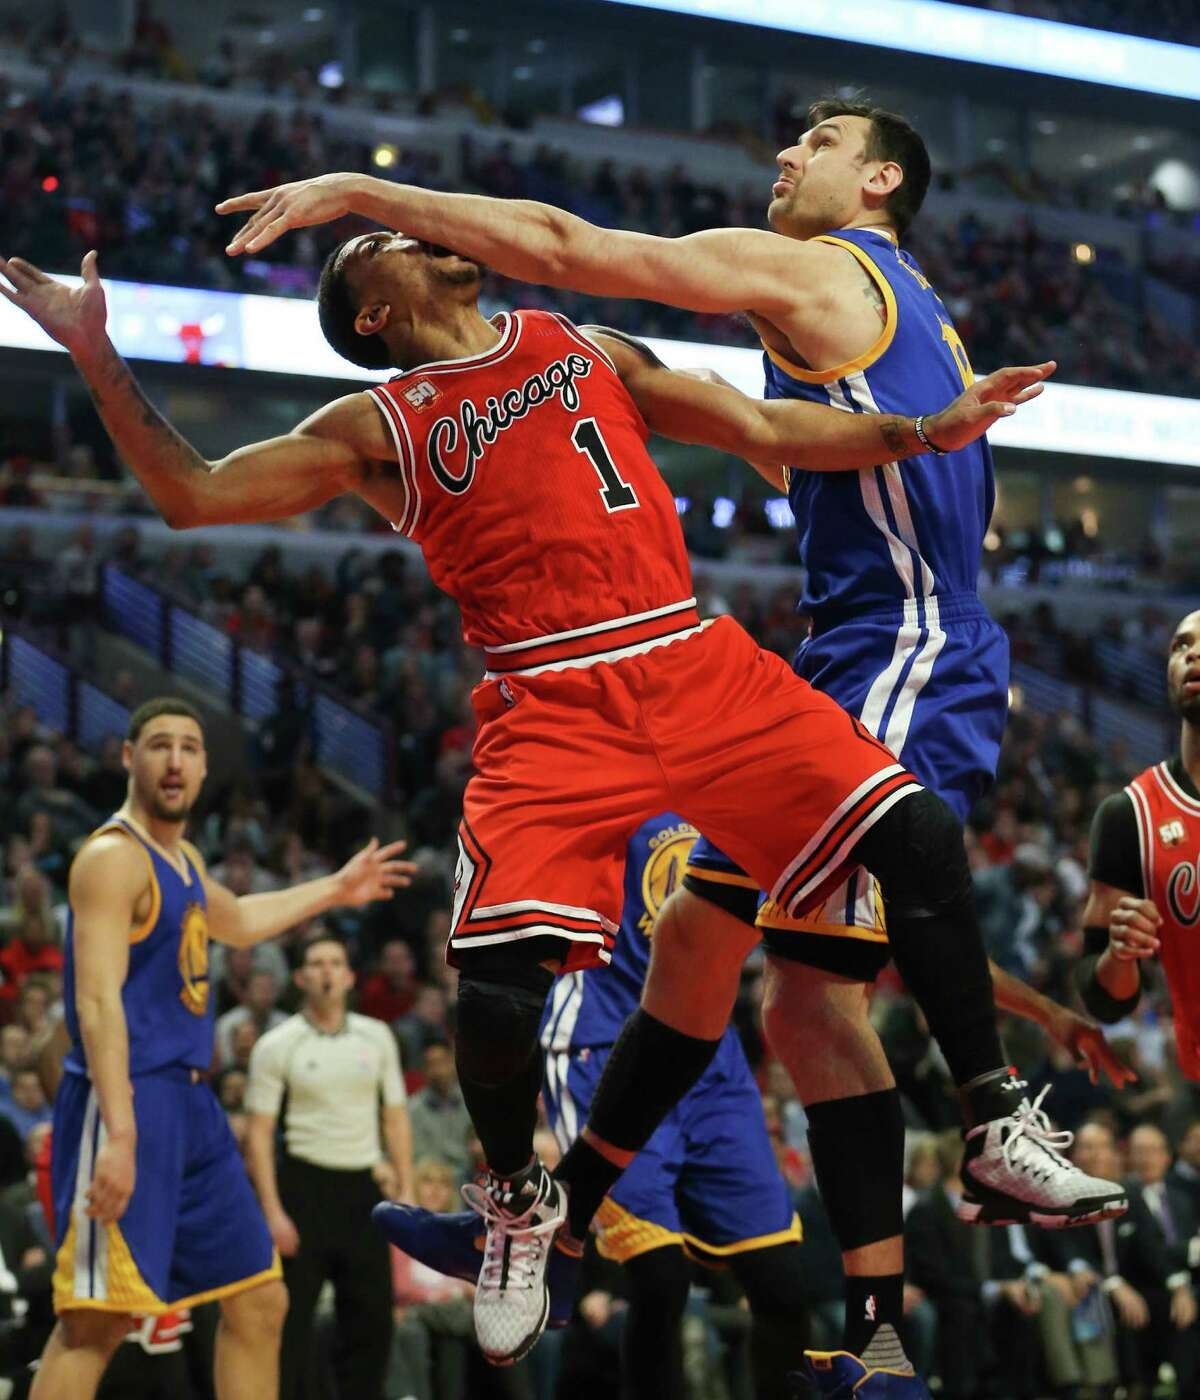 The Warriors' Andrew Bogut fouls the Bulls' Derrick Rose but fails to prevent Rose from making the shot.